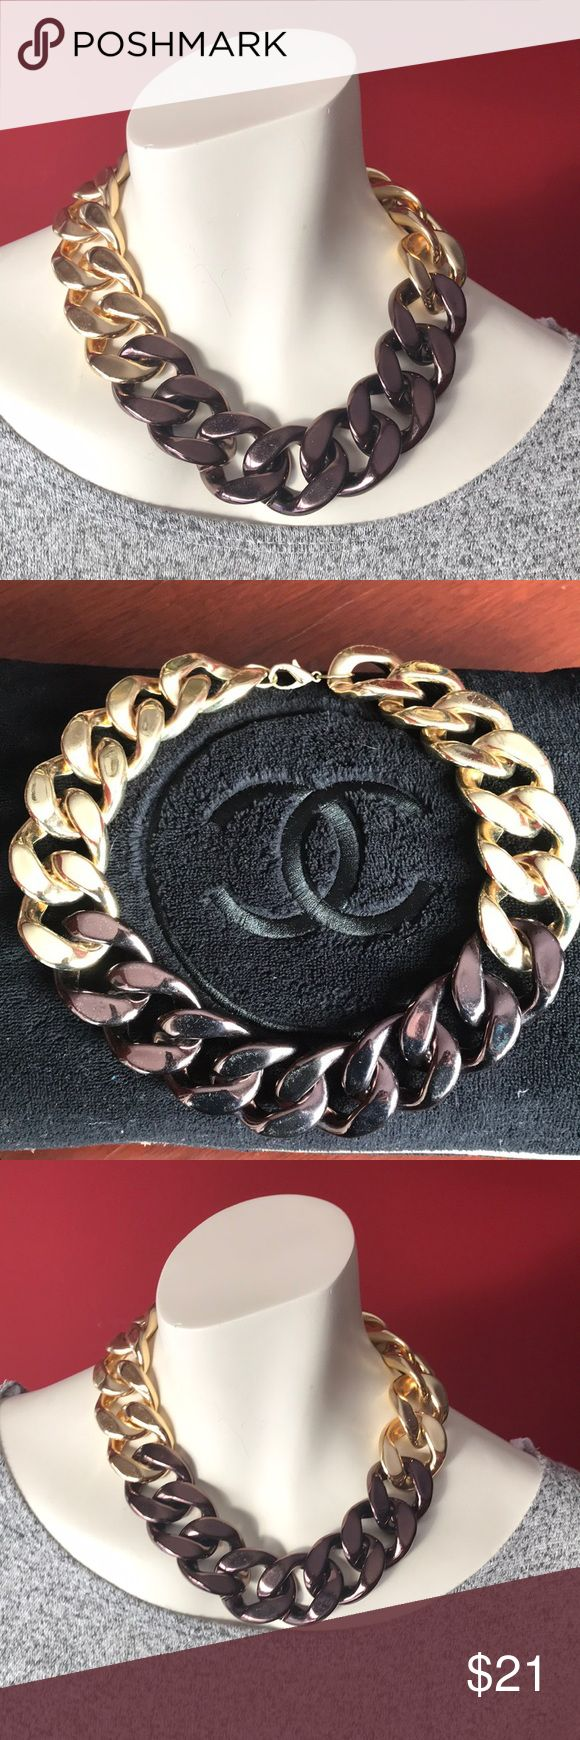 2 toned chunky chain necklace Eye catching & versatile Jewelry